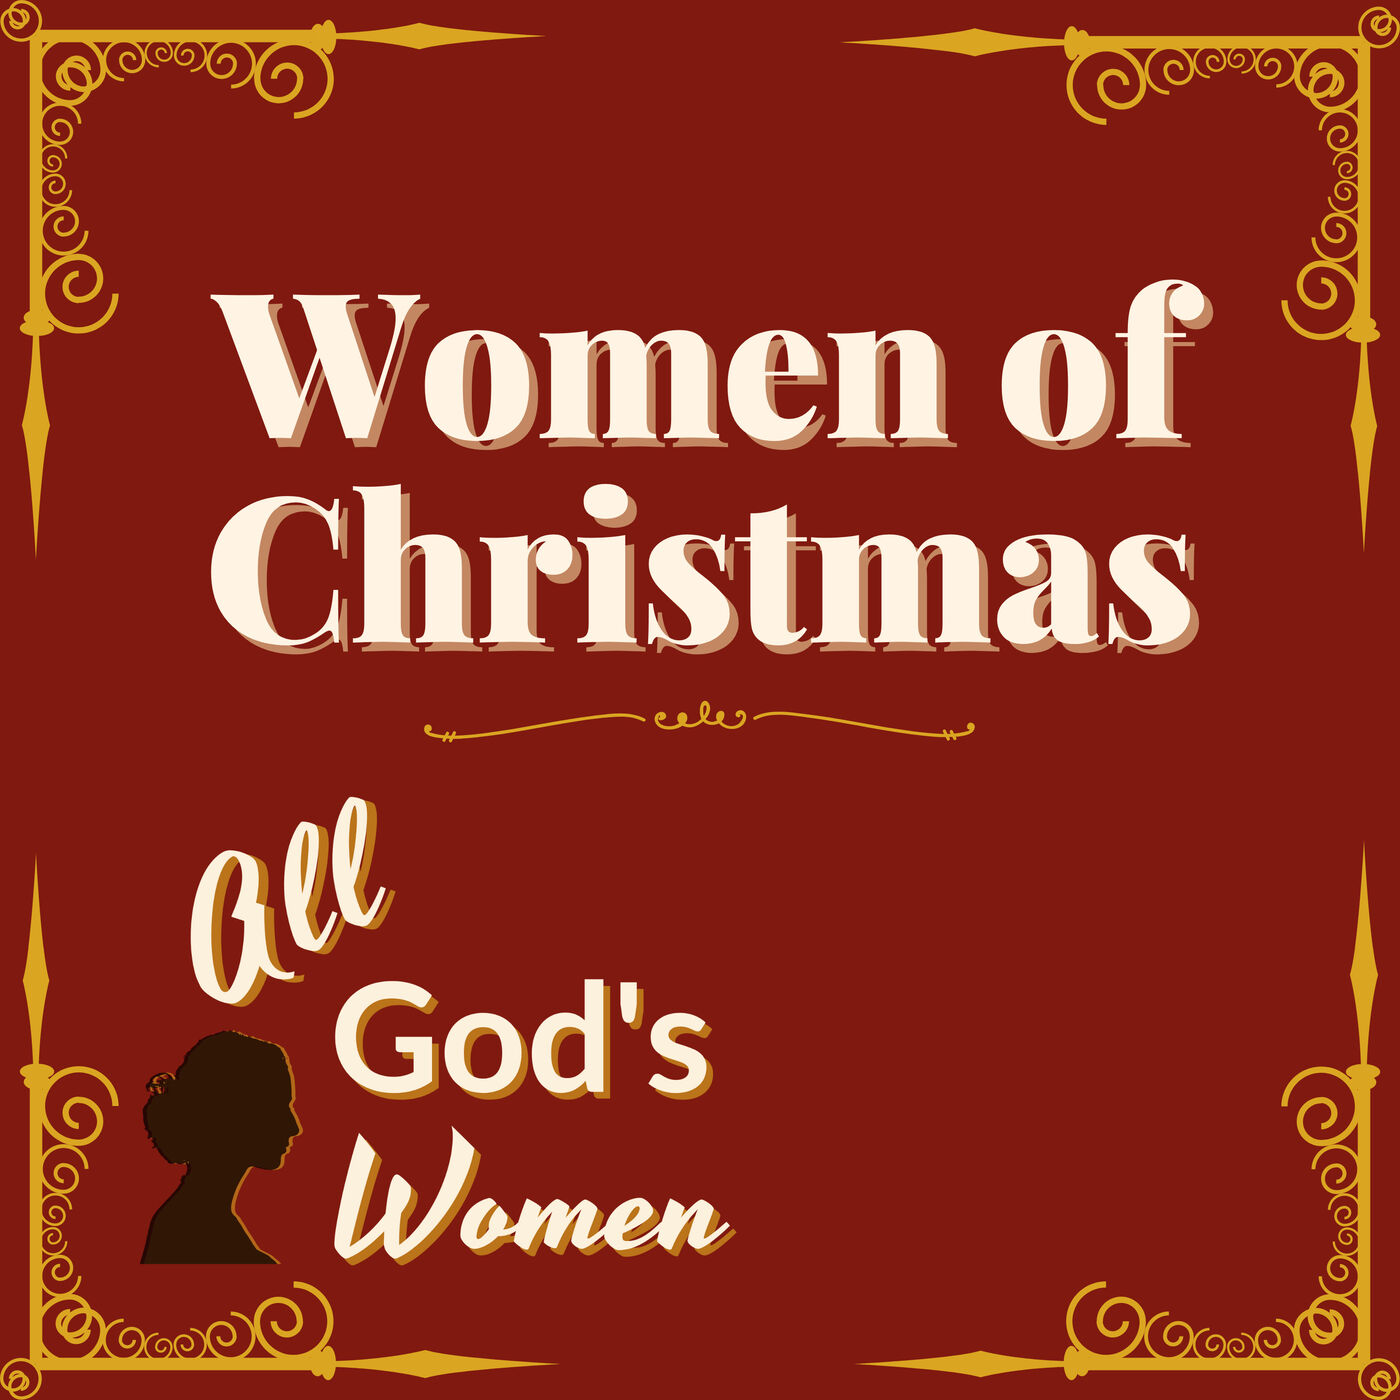 Women of Christmas - Special Crosscast Episode